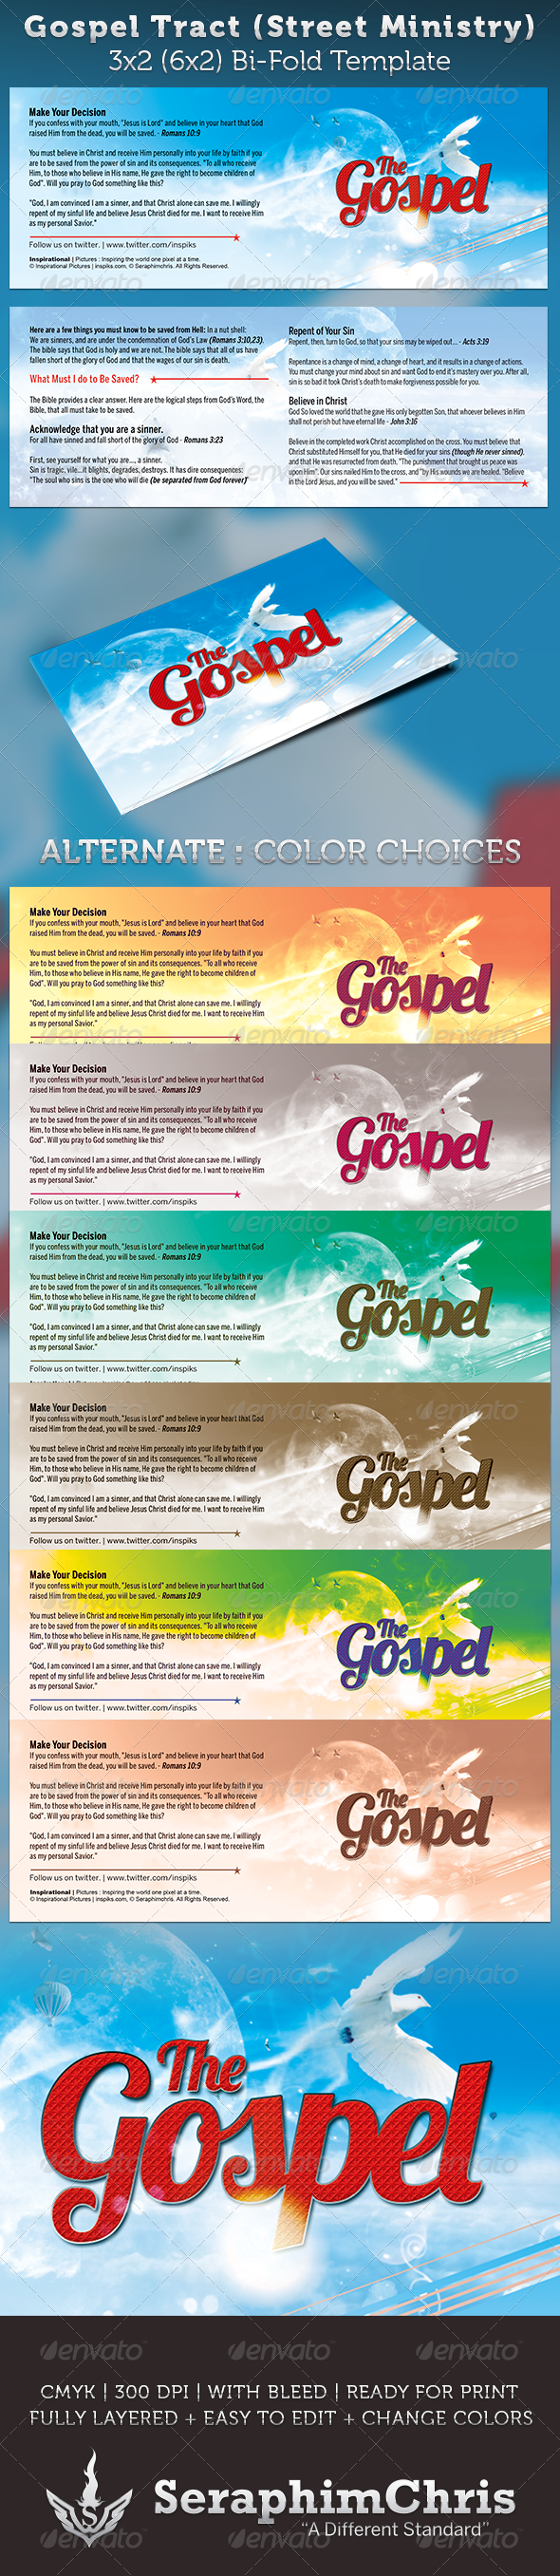 Gospel Tract: Bi-Fold Template - Church Flyers